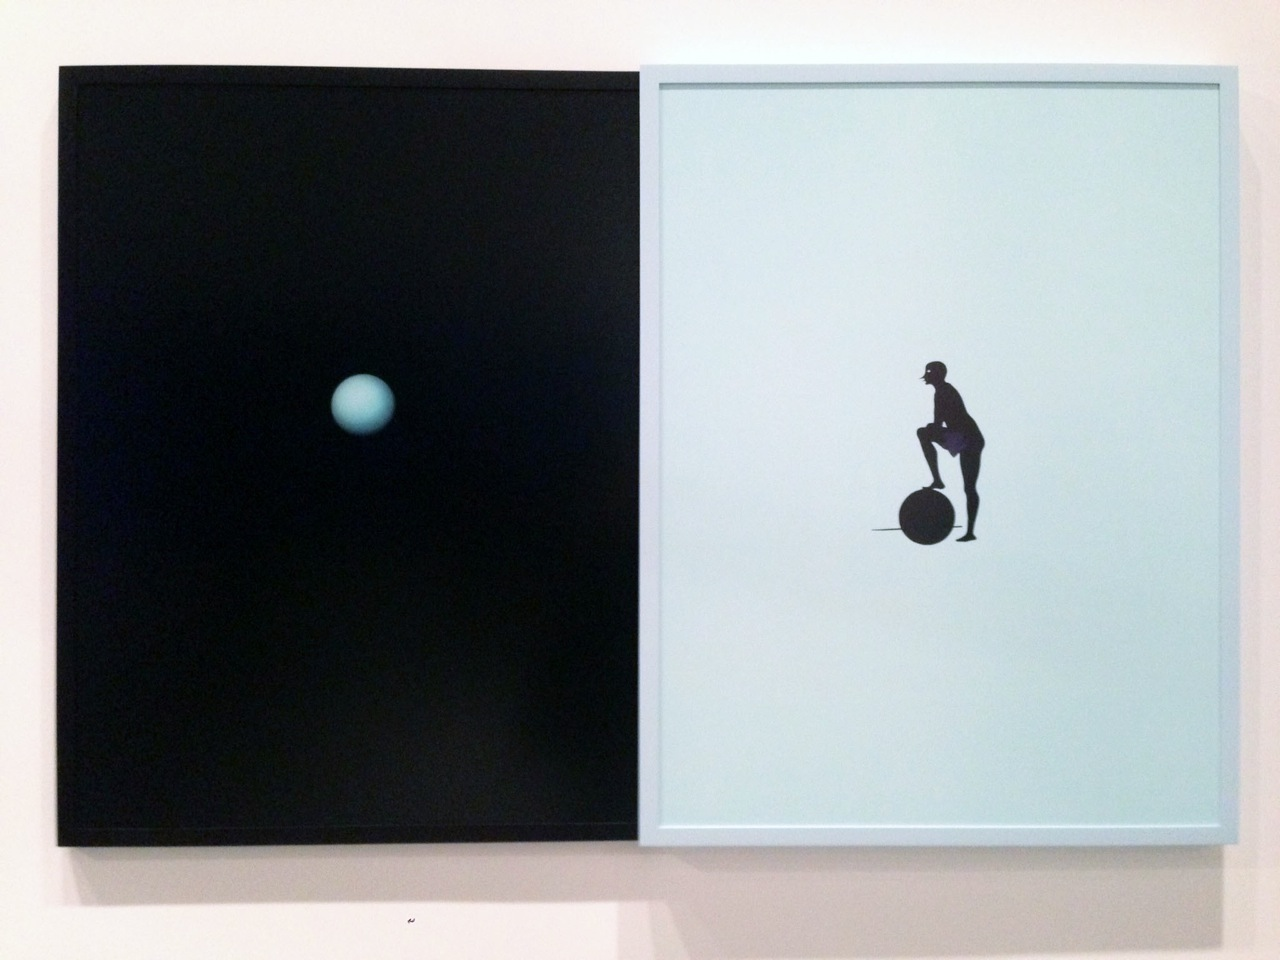 Sarah Charlesworth, Regarding Venus, 2012 (curated by Michelle Grabner)